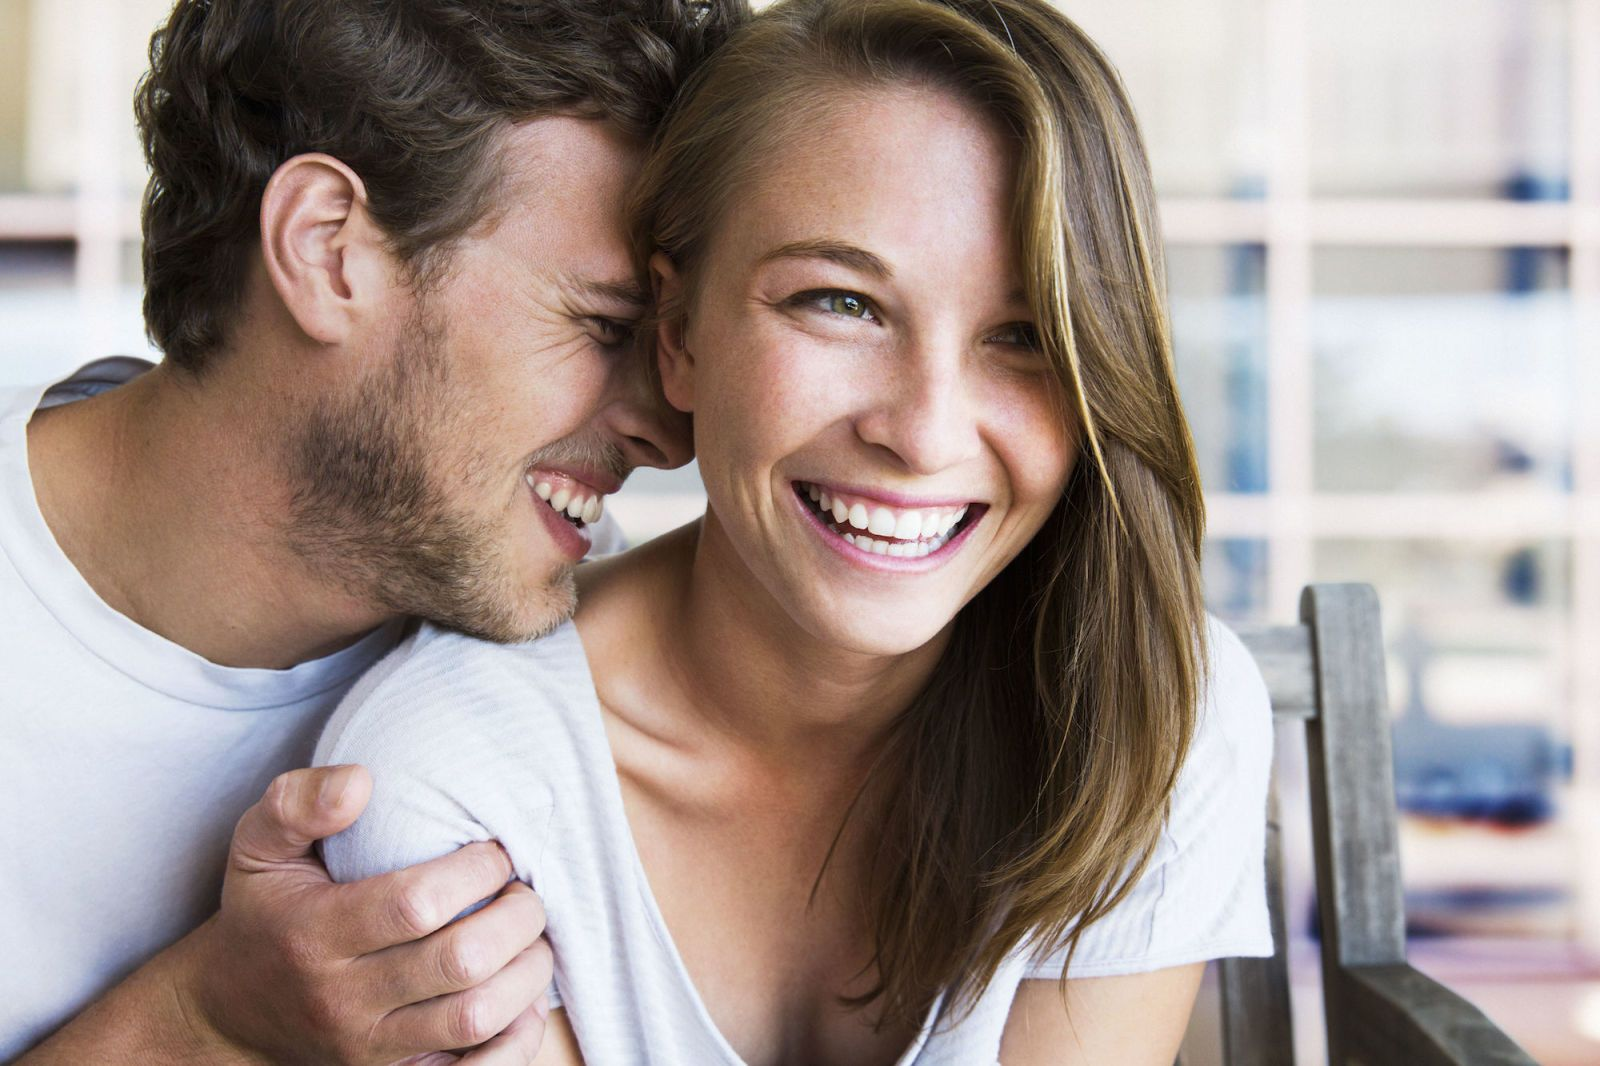 flirting moves that work for men without insurance coverage today